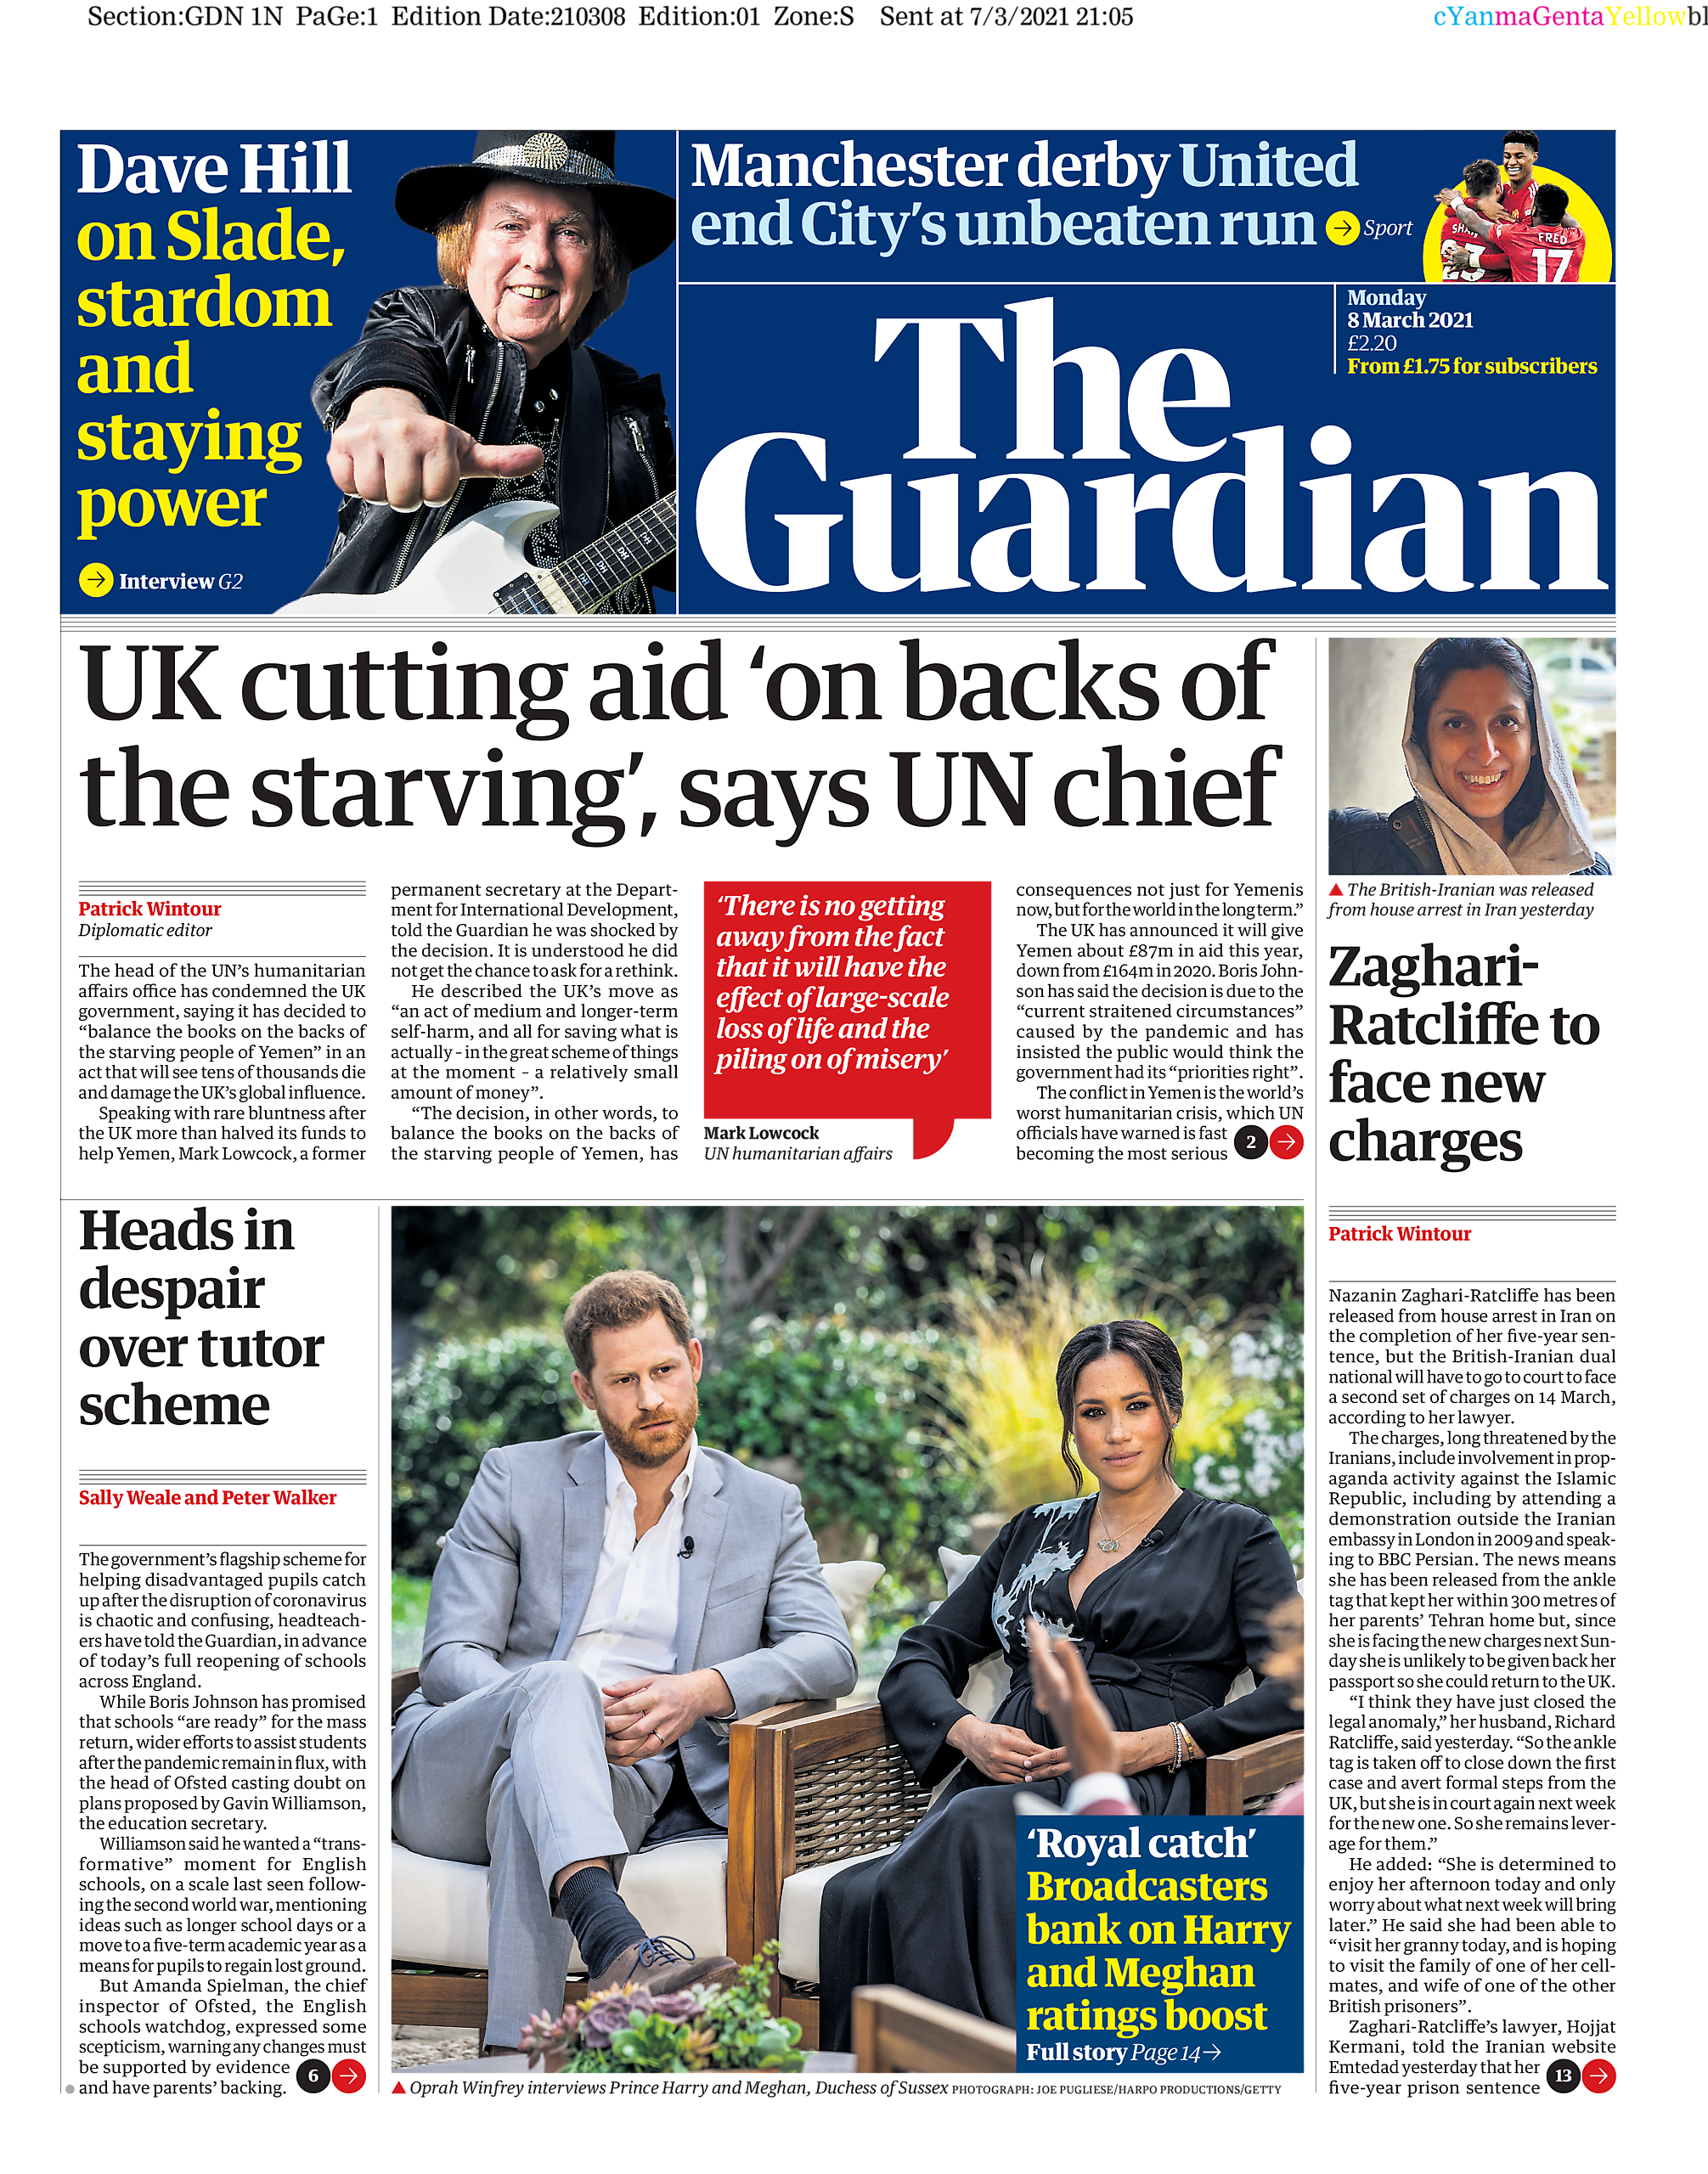 """The Guardian's front page has a photo insert with the caption """"Broadcasters bank on Harry and Meghan ratings boost"""""""